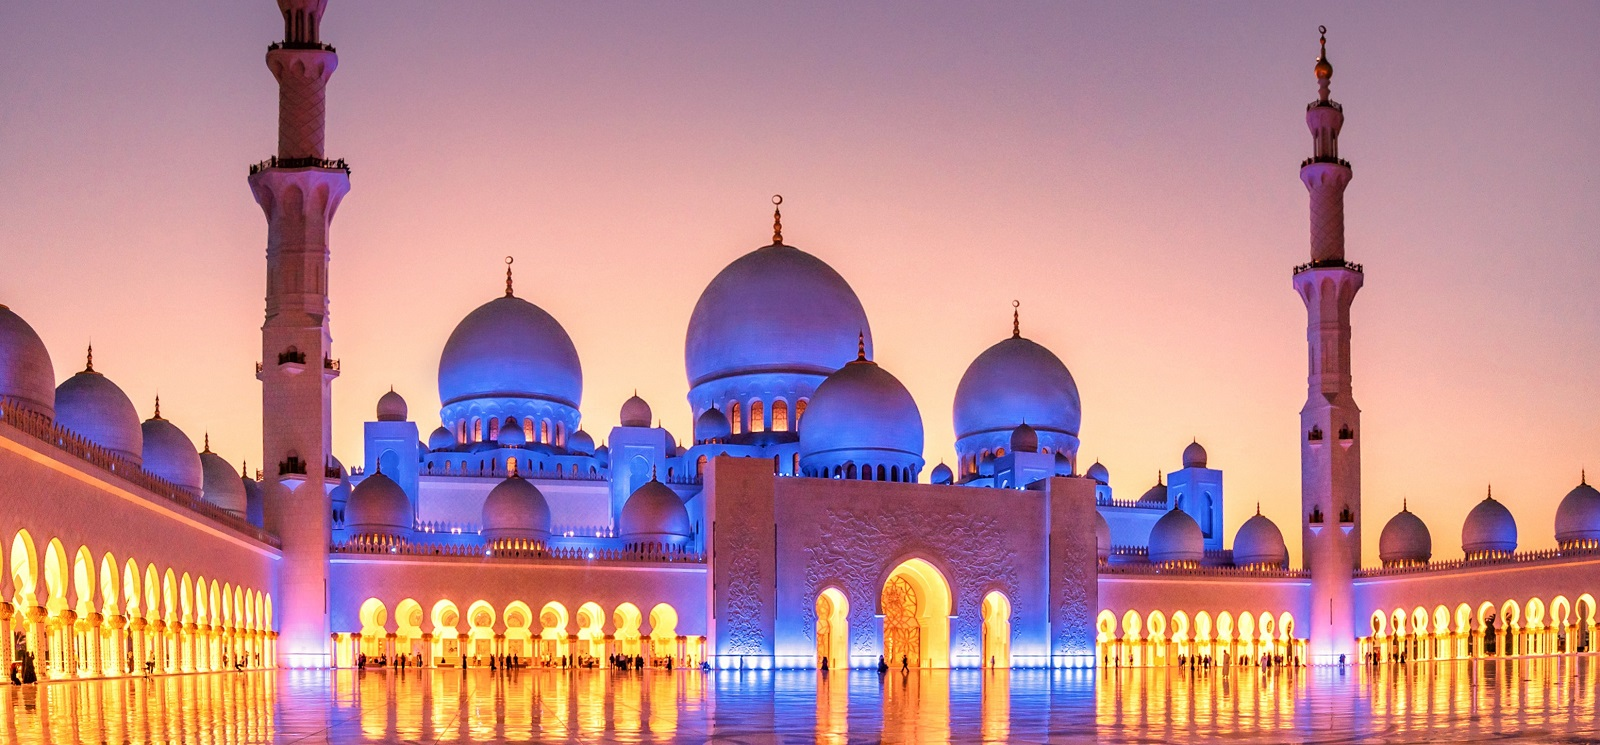 What to wear on holiday in Abu Dhabi